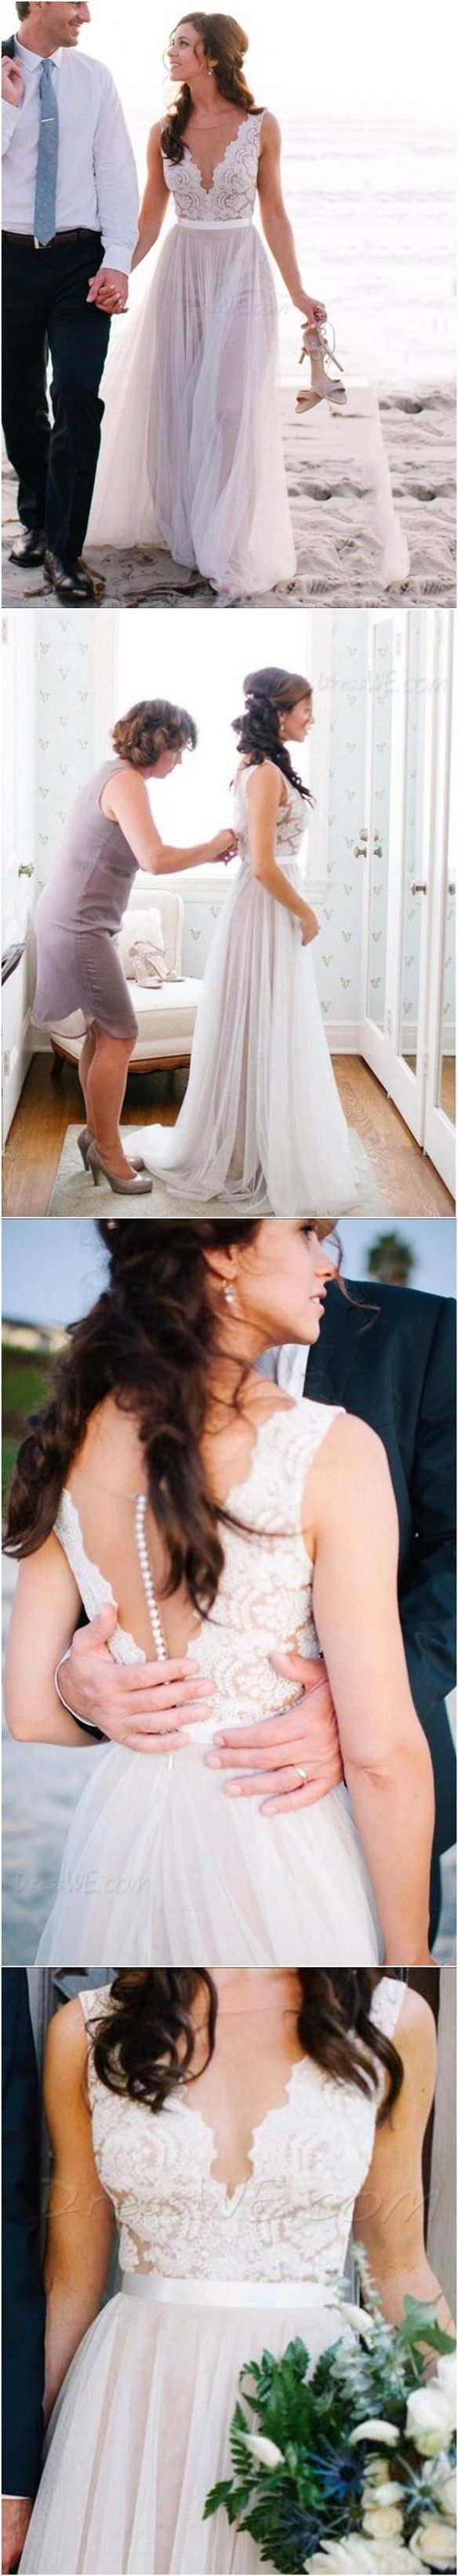 Beautiful Illusion Neckline Lace A Line Beach Wedding Dress #DressweReviews